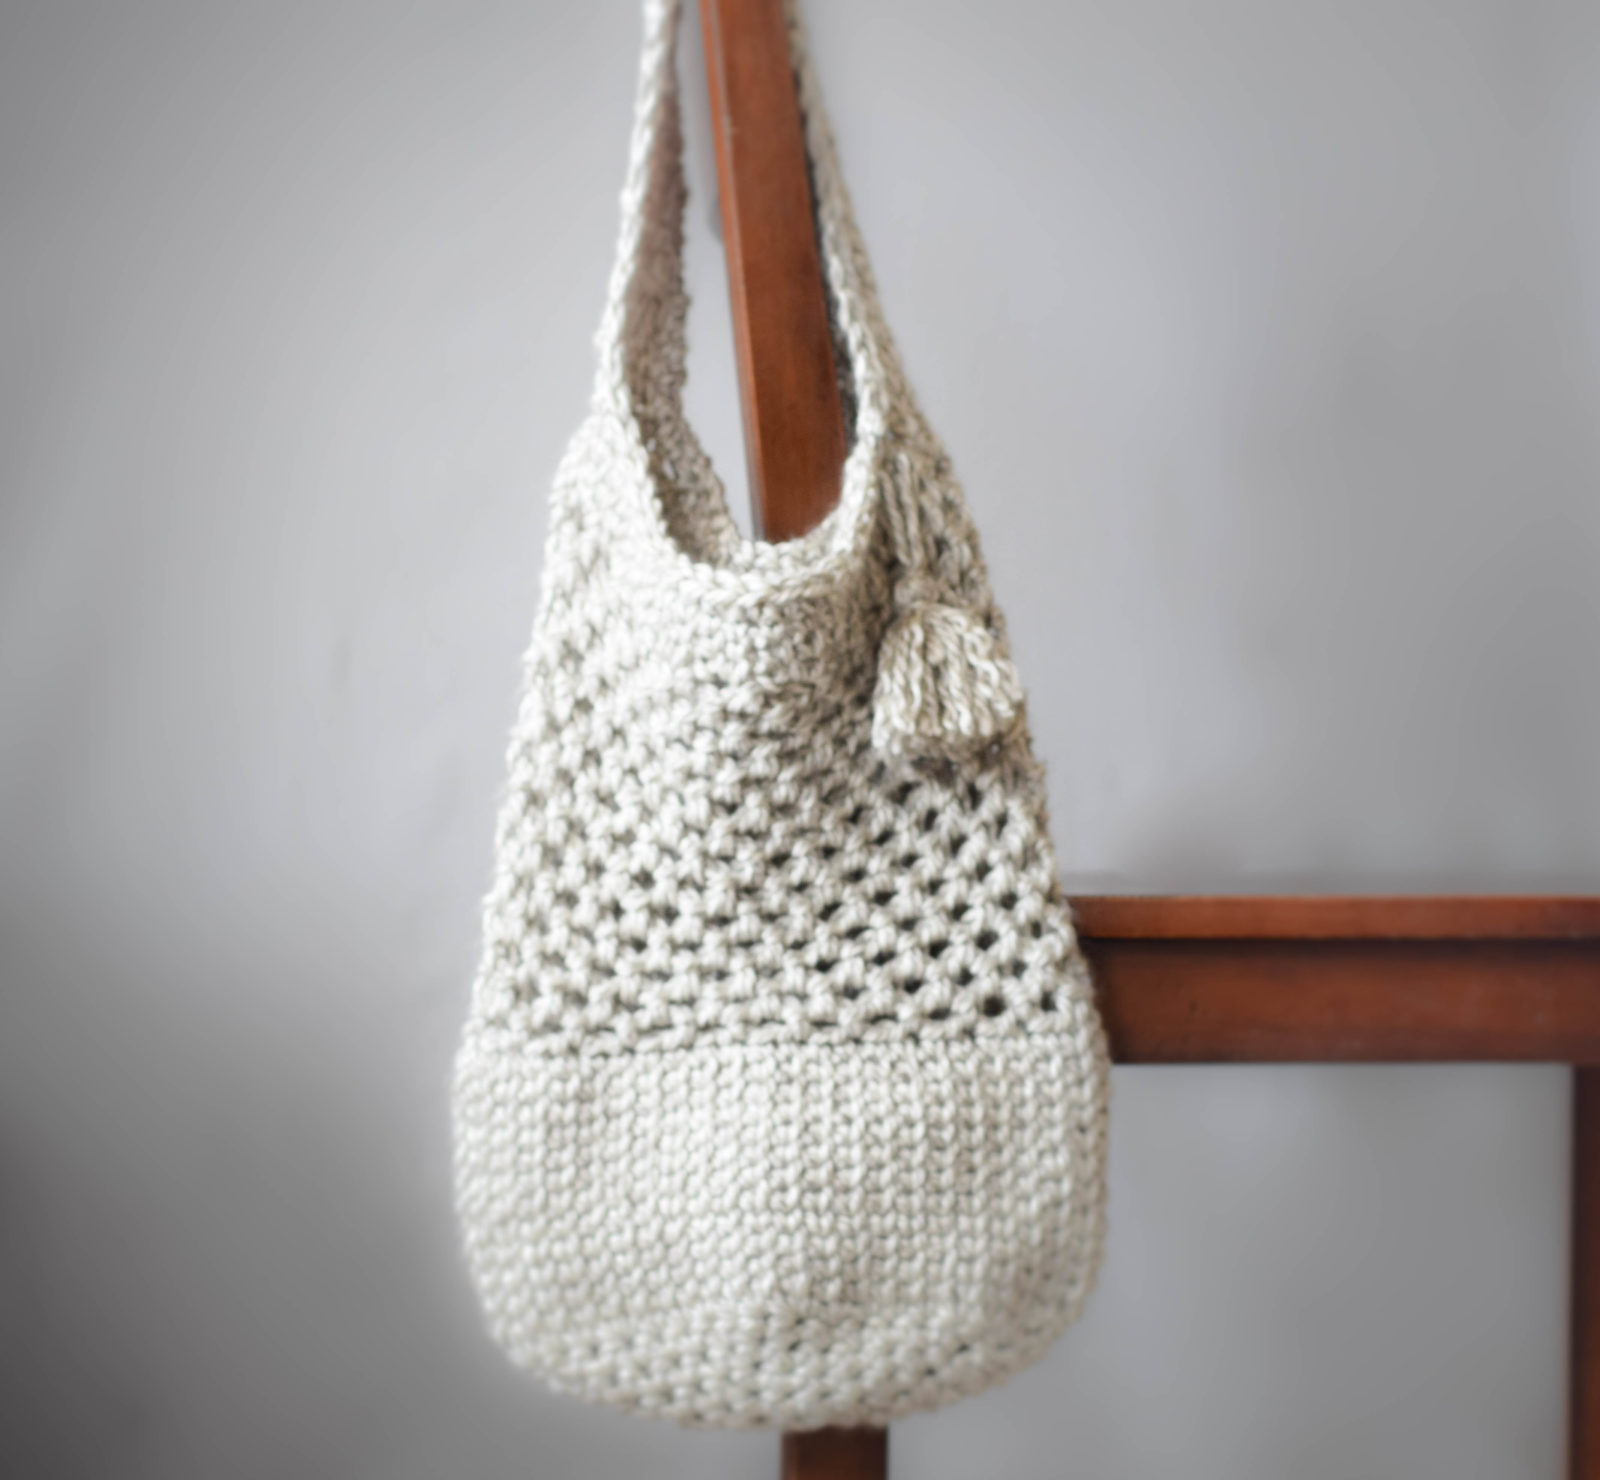 Crochet Tote Pattern Free : Manhattan Market Tote - Crochet Pattern - Mama In A Stitch